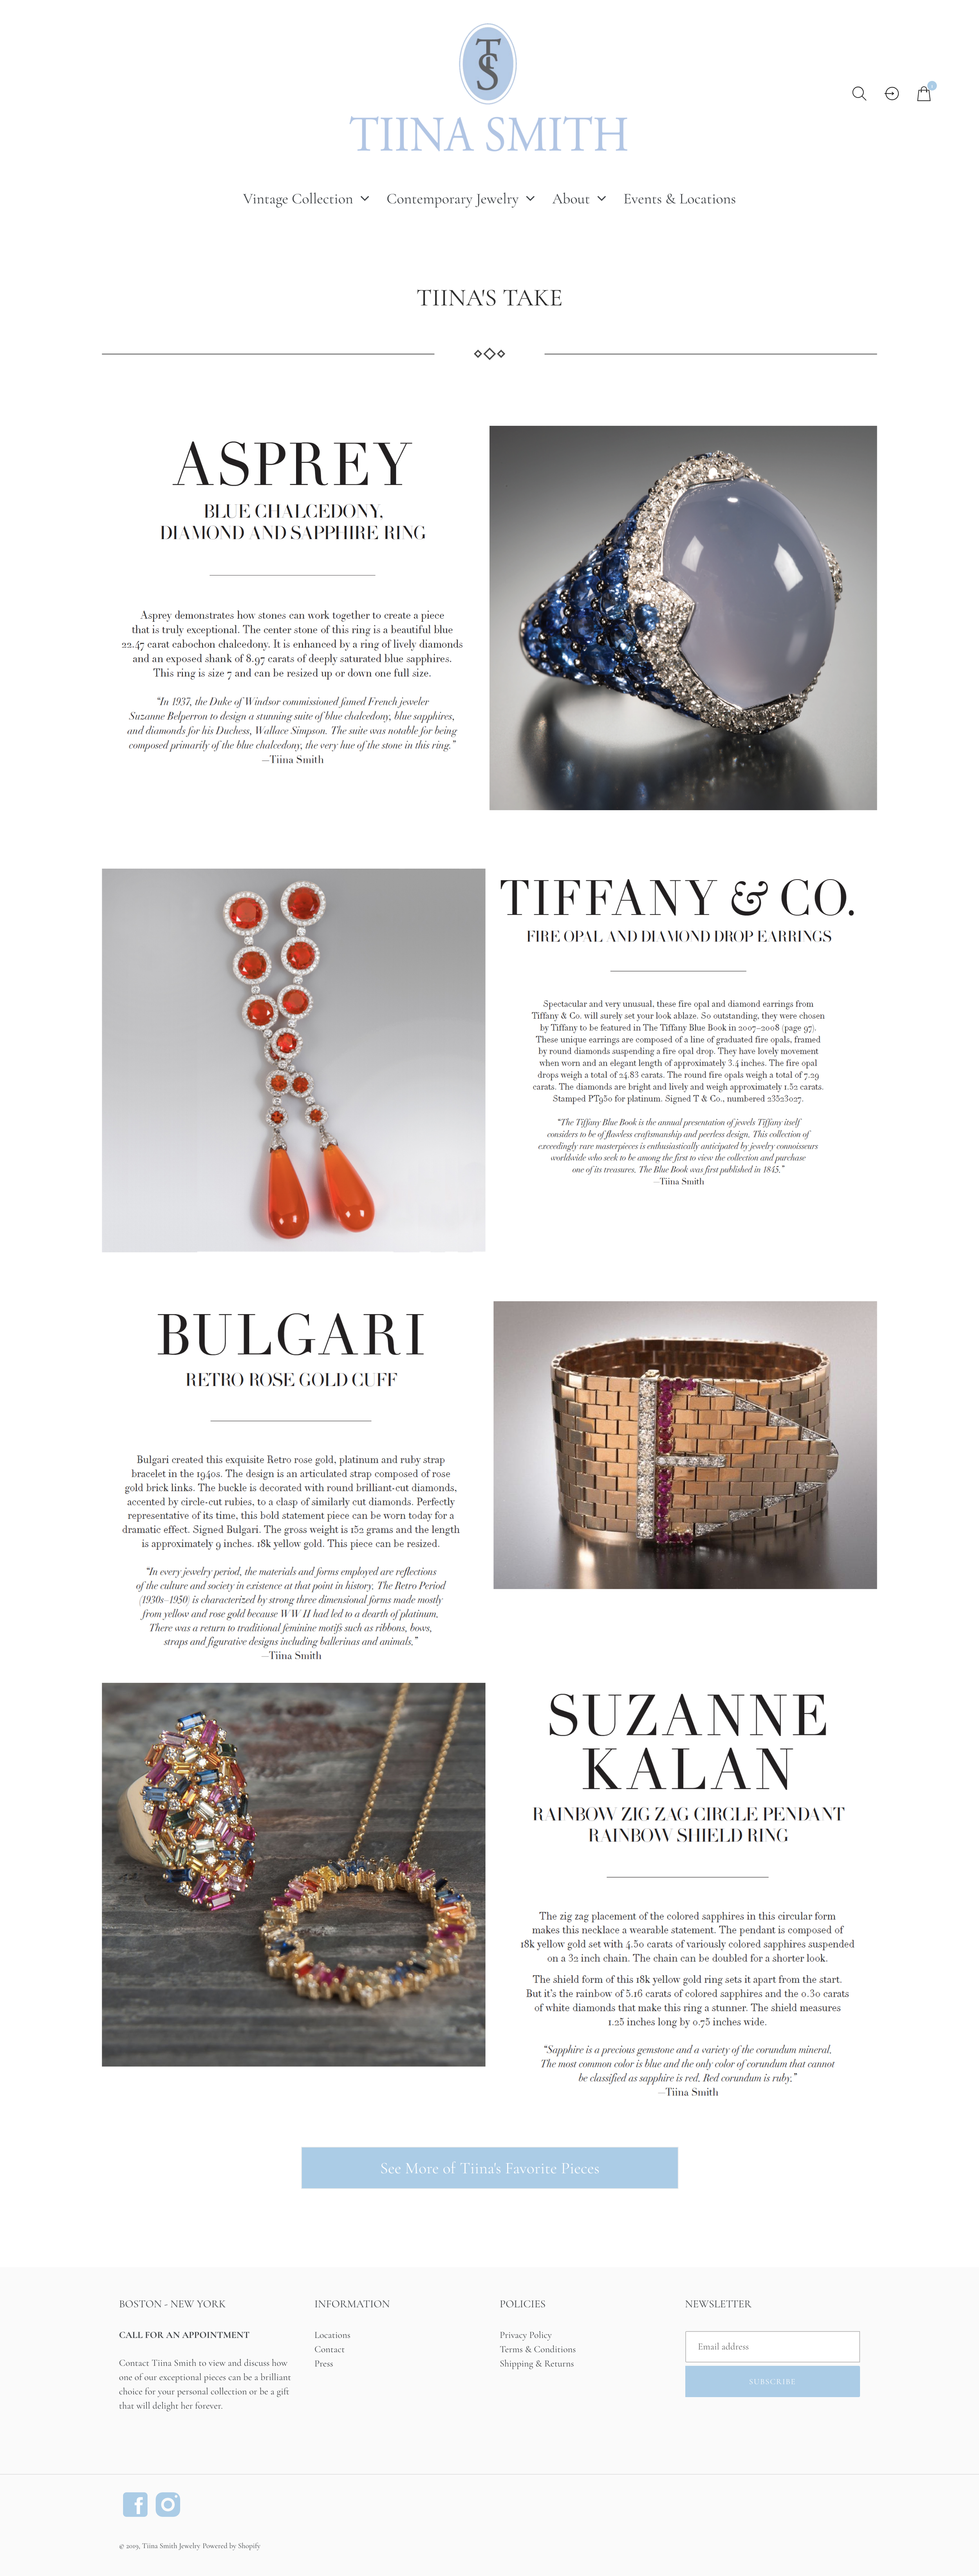 screencapture-tiinasmithjewelry-pages-tiinas-take-2019-03-06-17_35_28.png